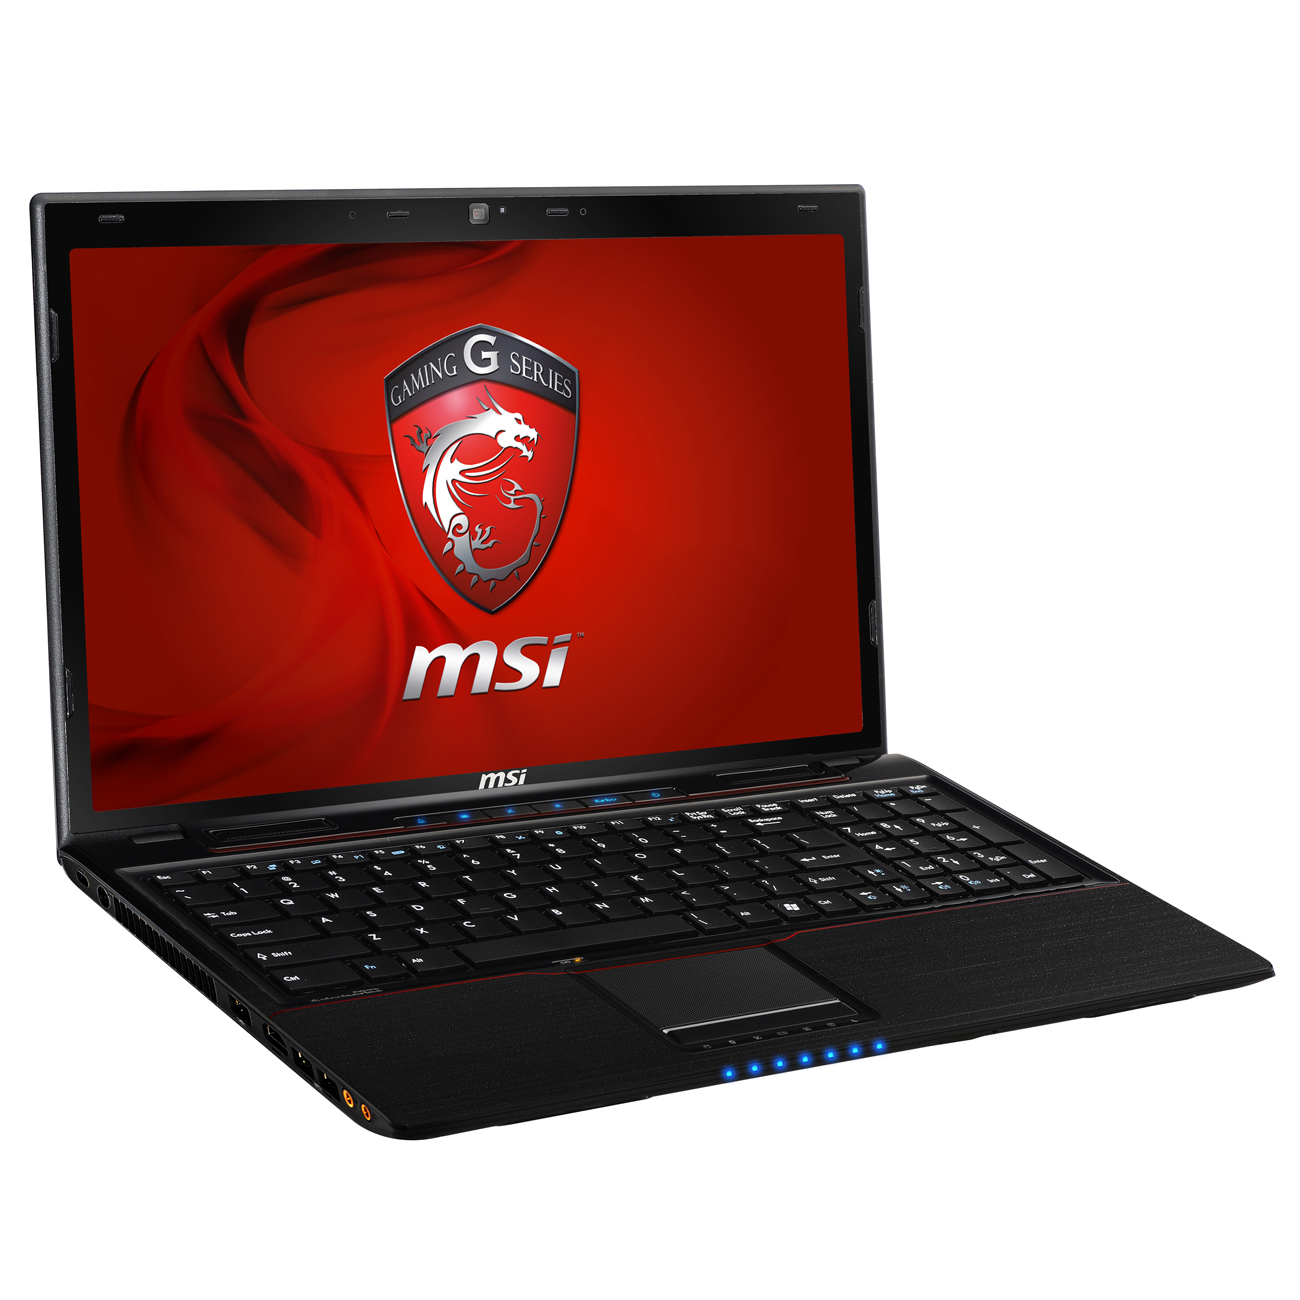 "PC portable MSI GE60 0ND-265FR Intel Core i5-3210M 4 Go 750 Go 15.6"" LED NVIDIA GeForce GTX 660M Graveur DVD Wi-Fi N/Bluetooth Webcam Windows 8 (garantie constructeur 2 ans)"